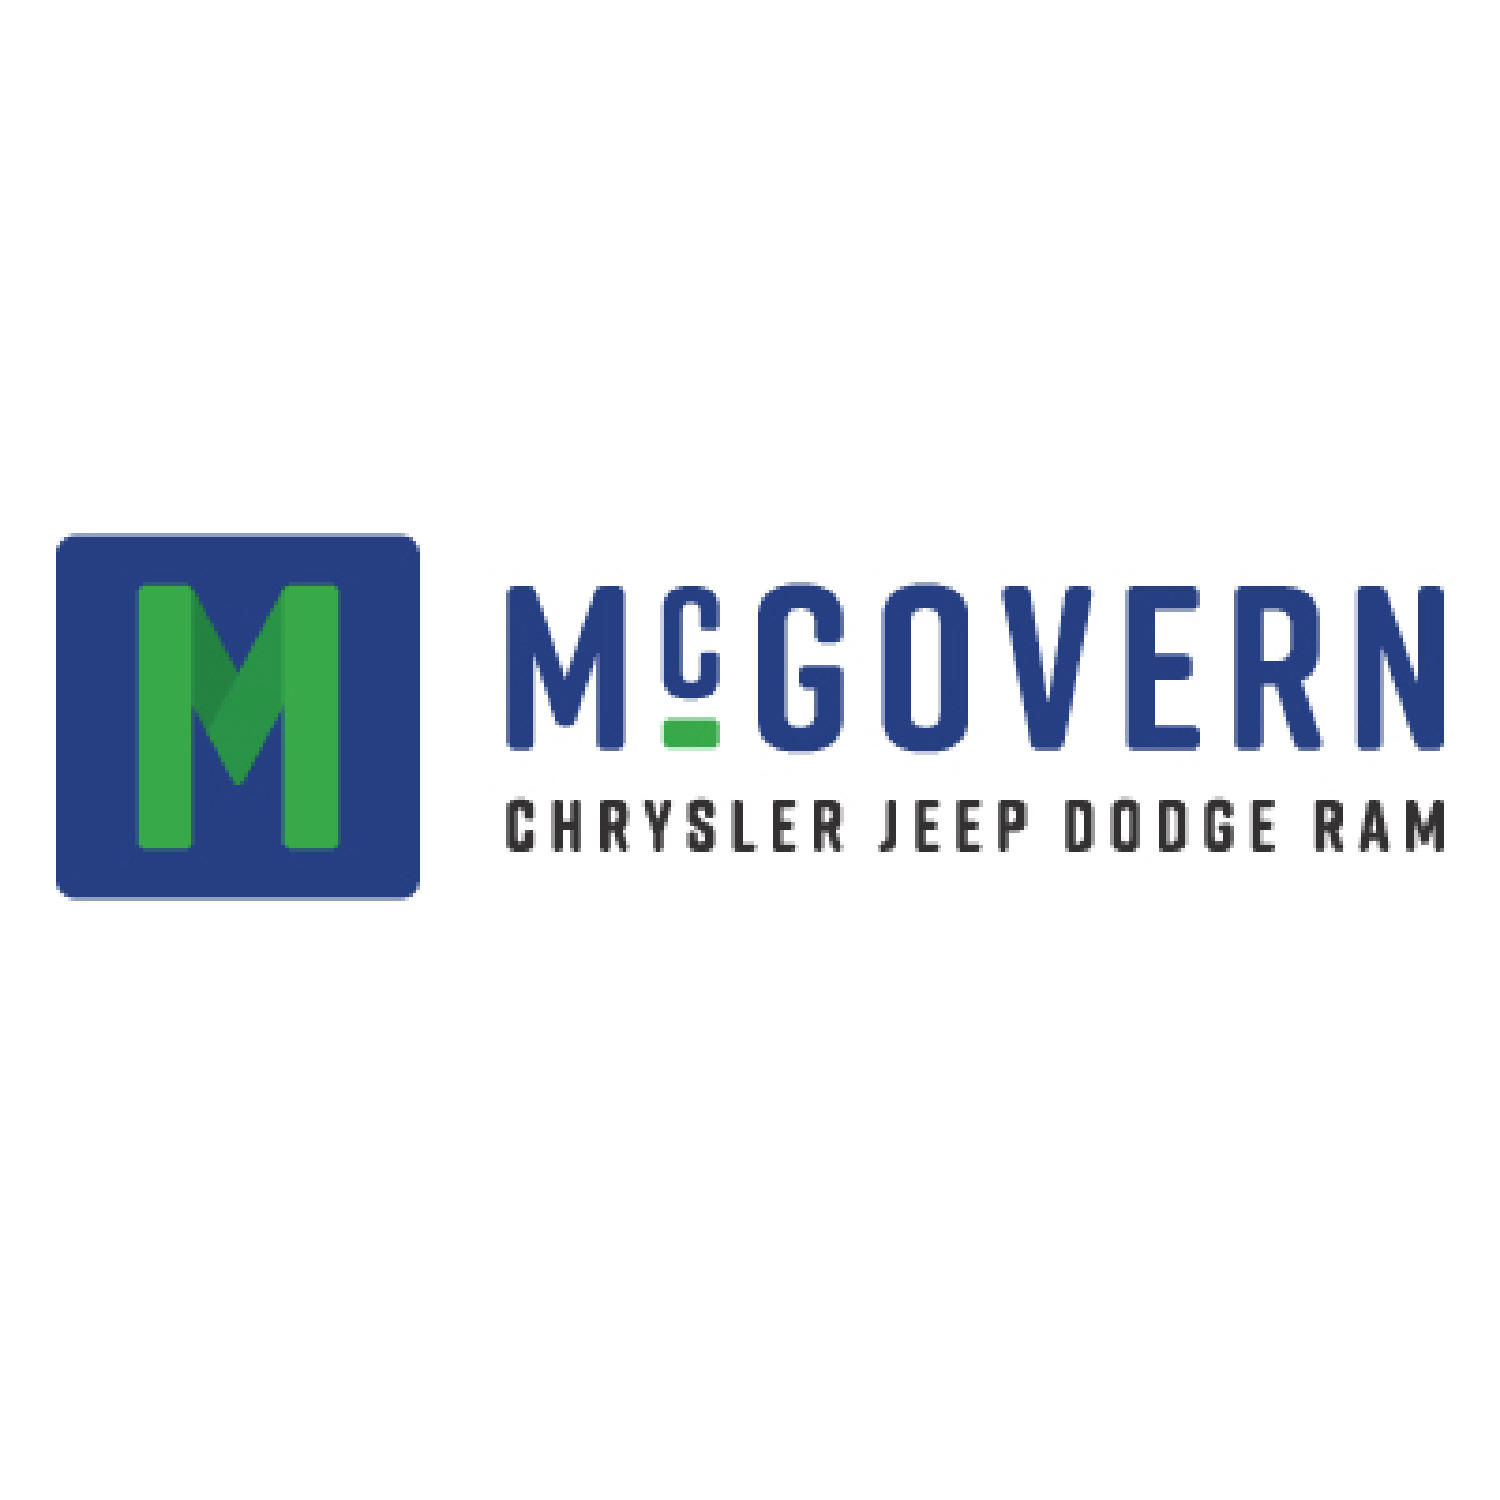 McGovern Chrysler Jeep Dodge Ram - Newton, MA - Auto Dealers